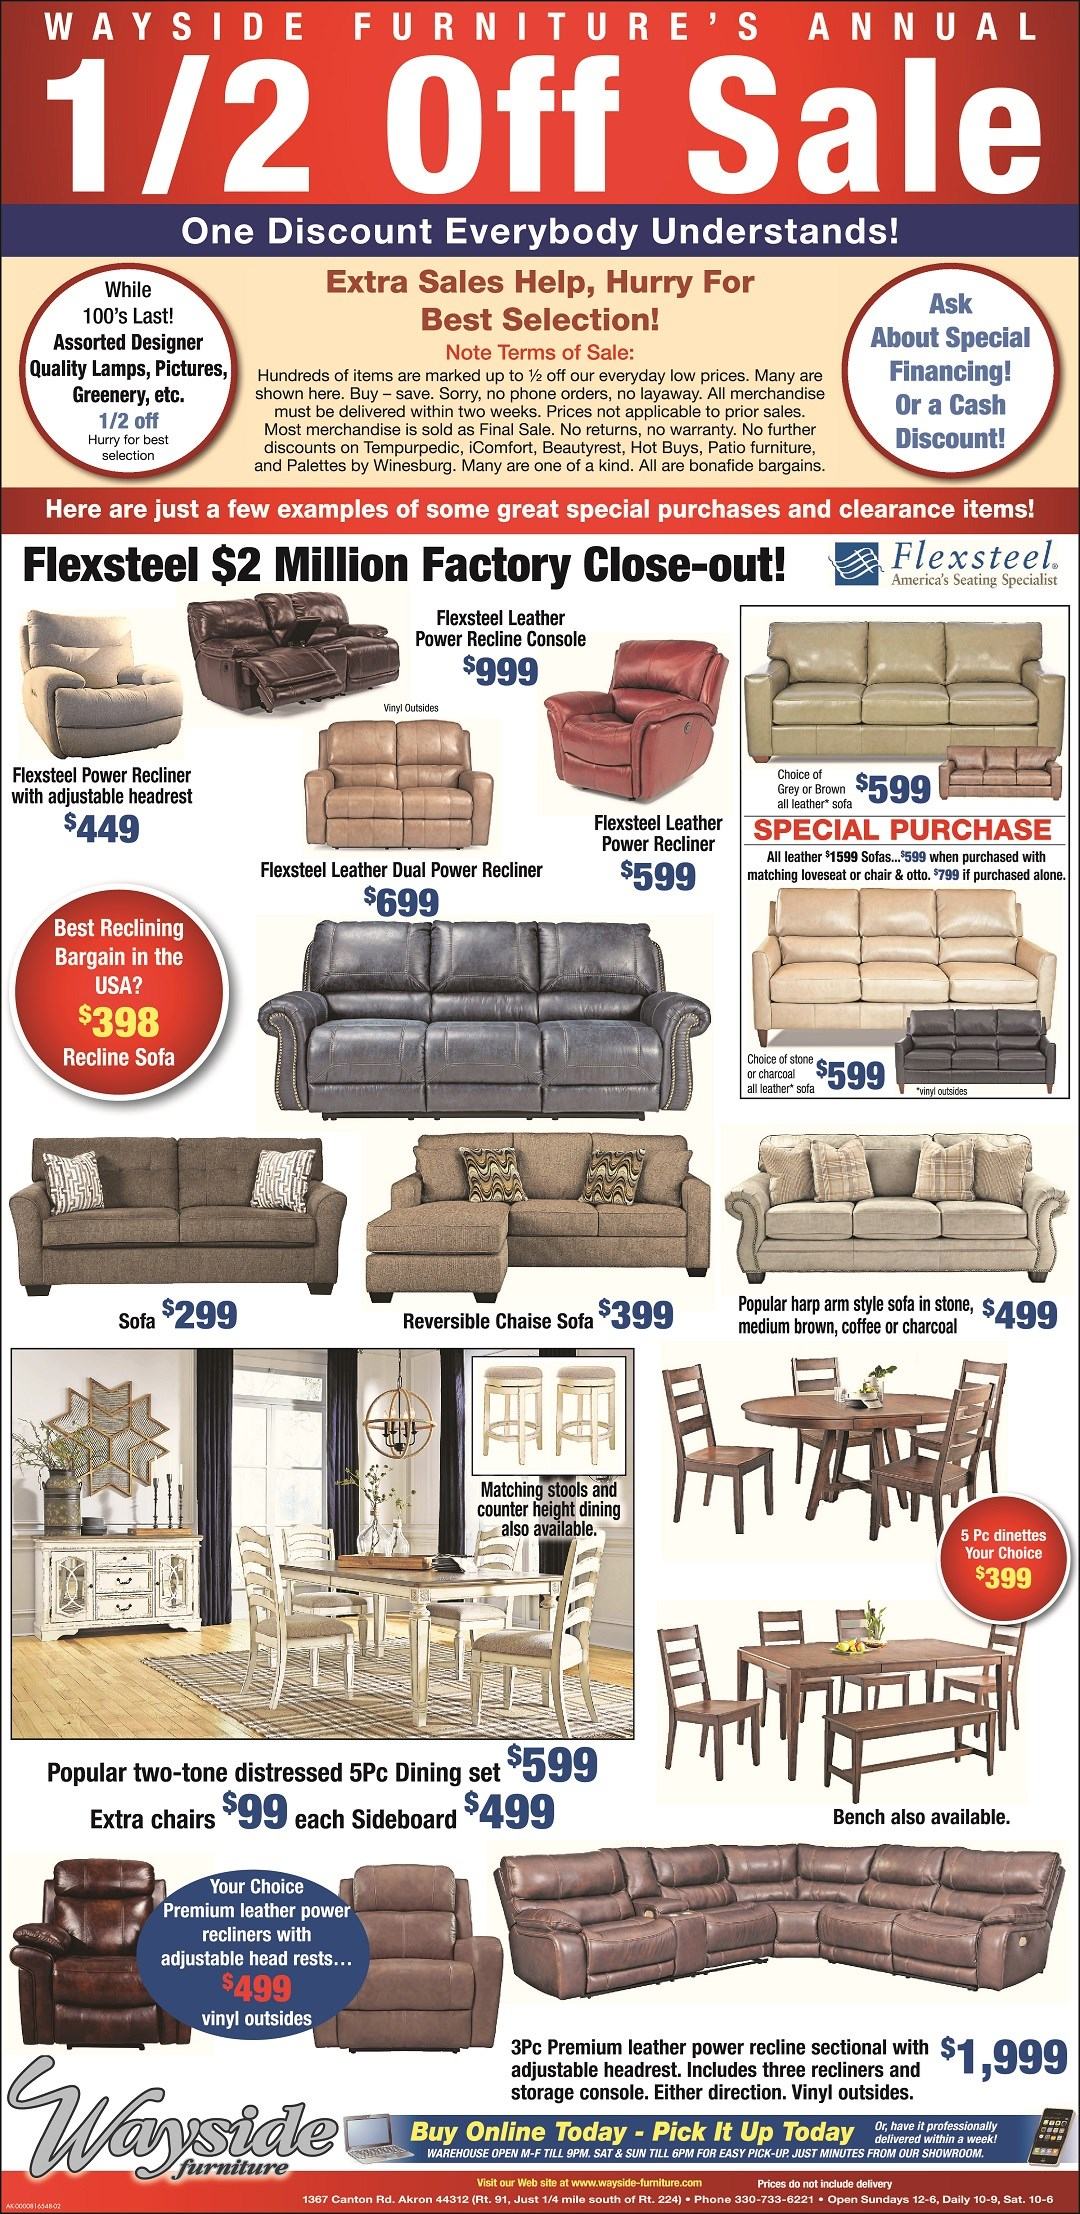 Wayside Furniture's Annual 1/2 off sale. On hundreds of items storewide. $2Million flexsteel buyout